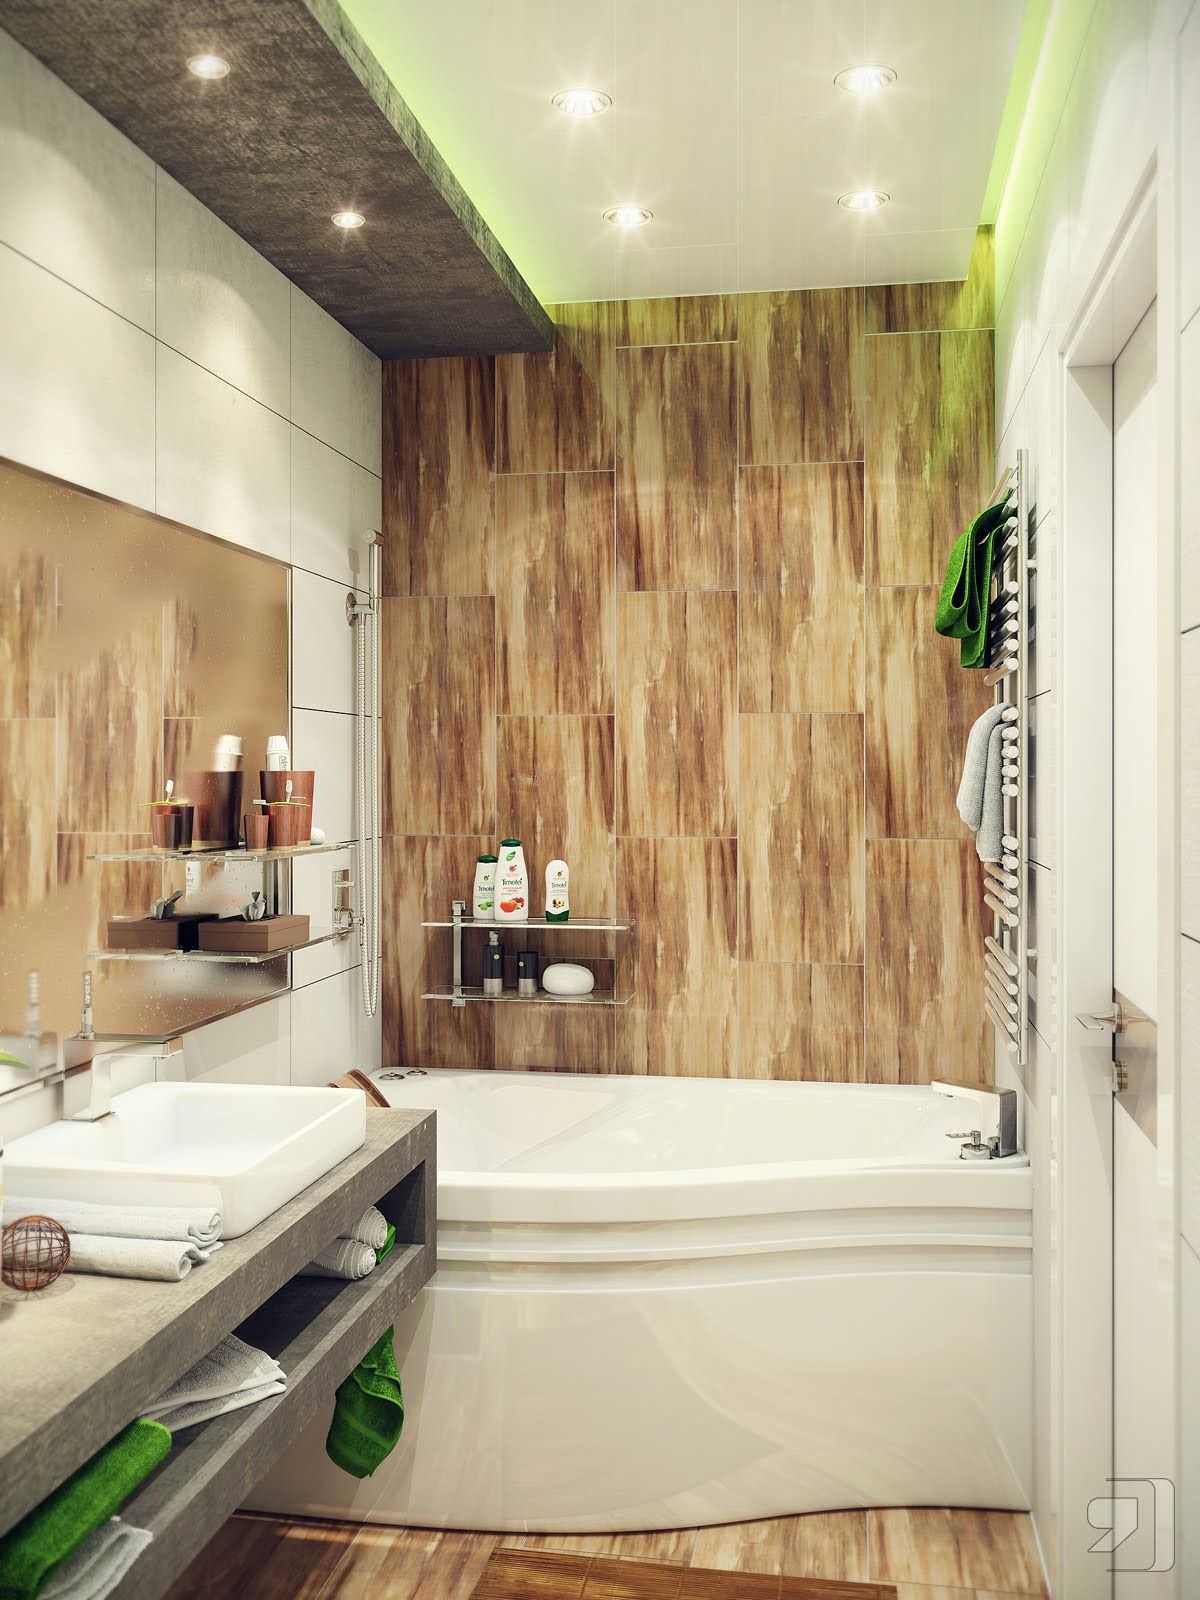 Good White And Wood Bathroom Ideas Part - 7: Small Space Does Not Have To Mean Small On Style.We Love This Green White  Wood Bathroom